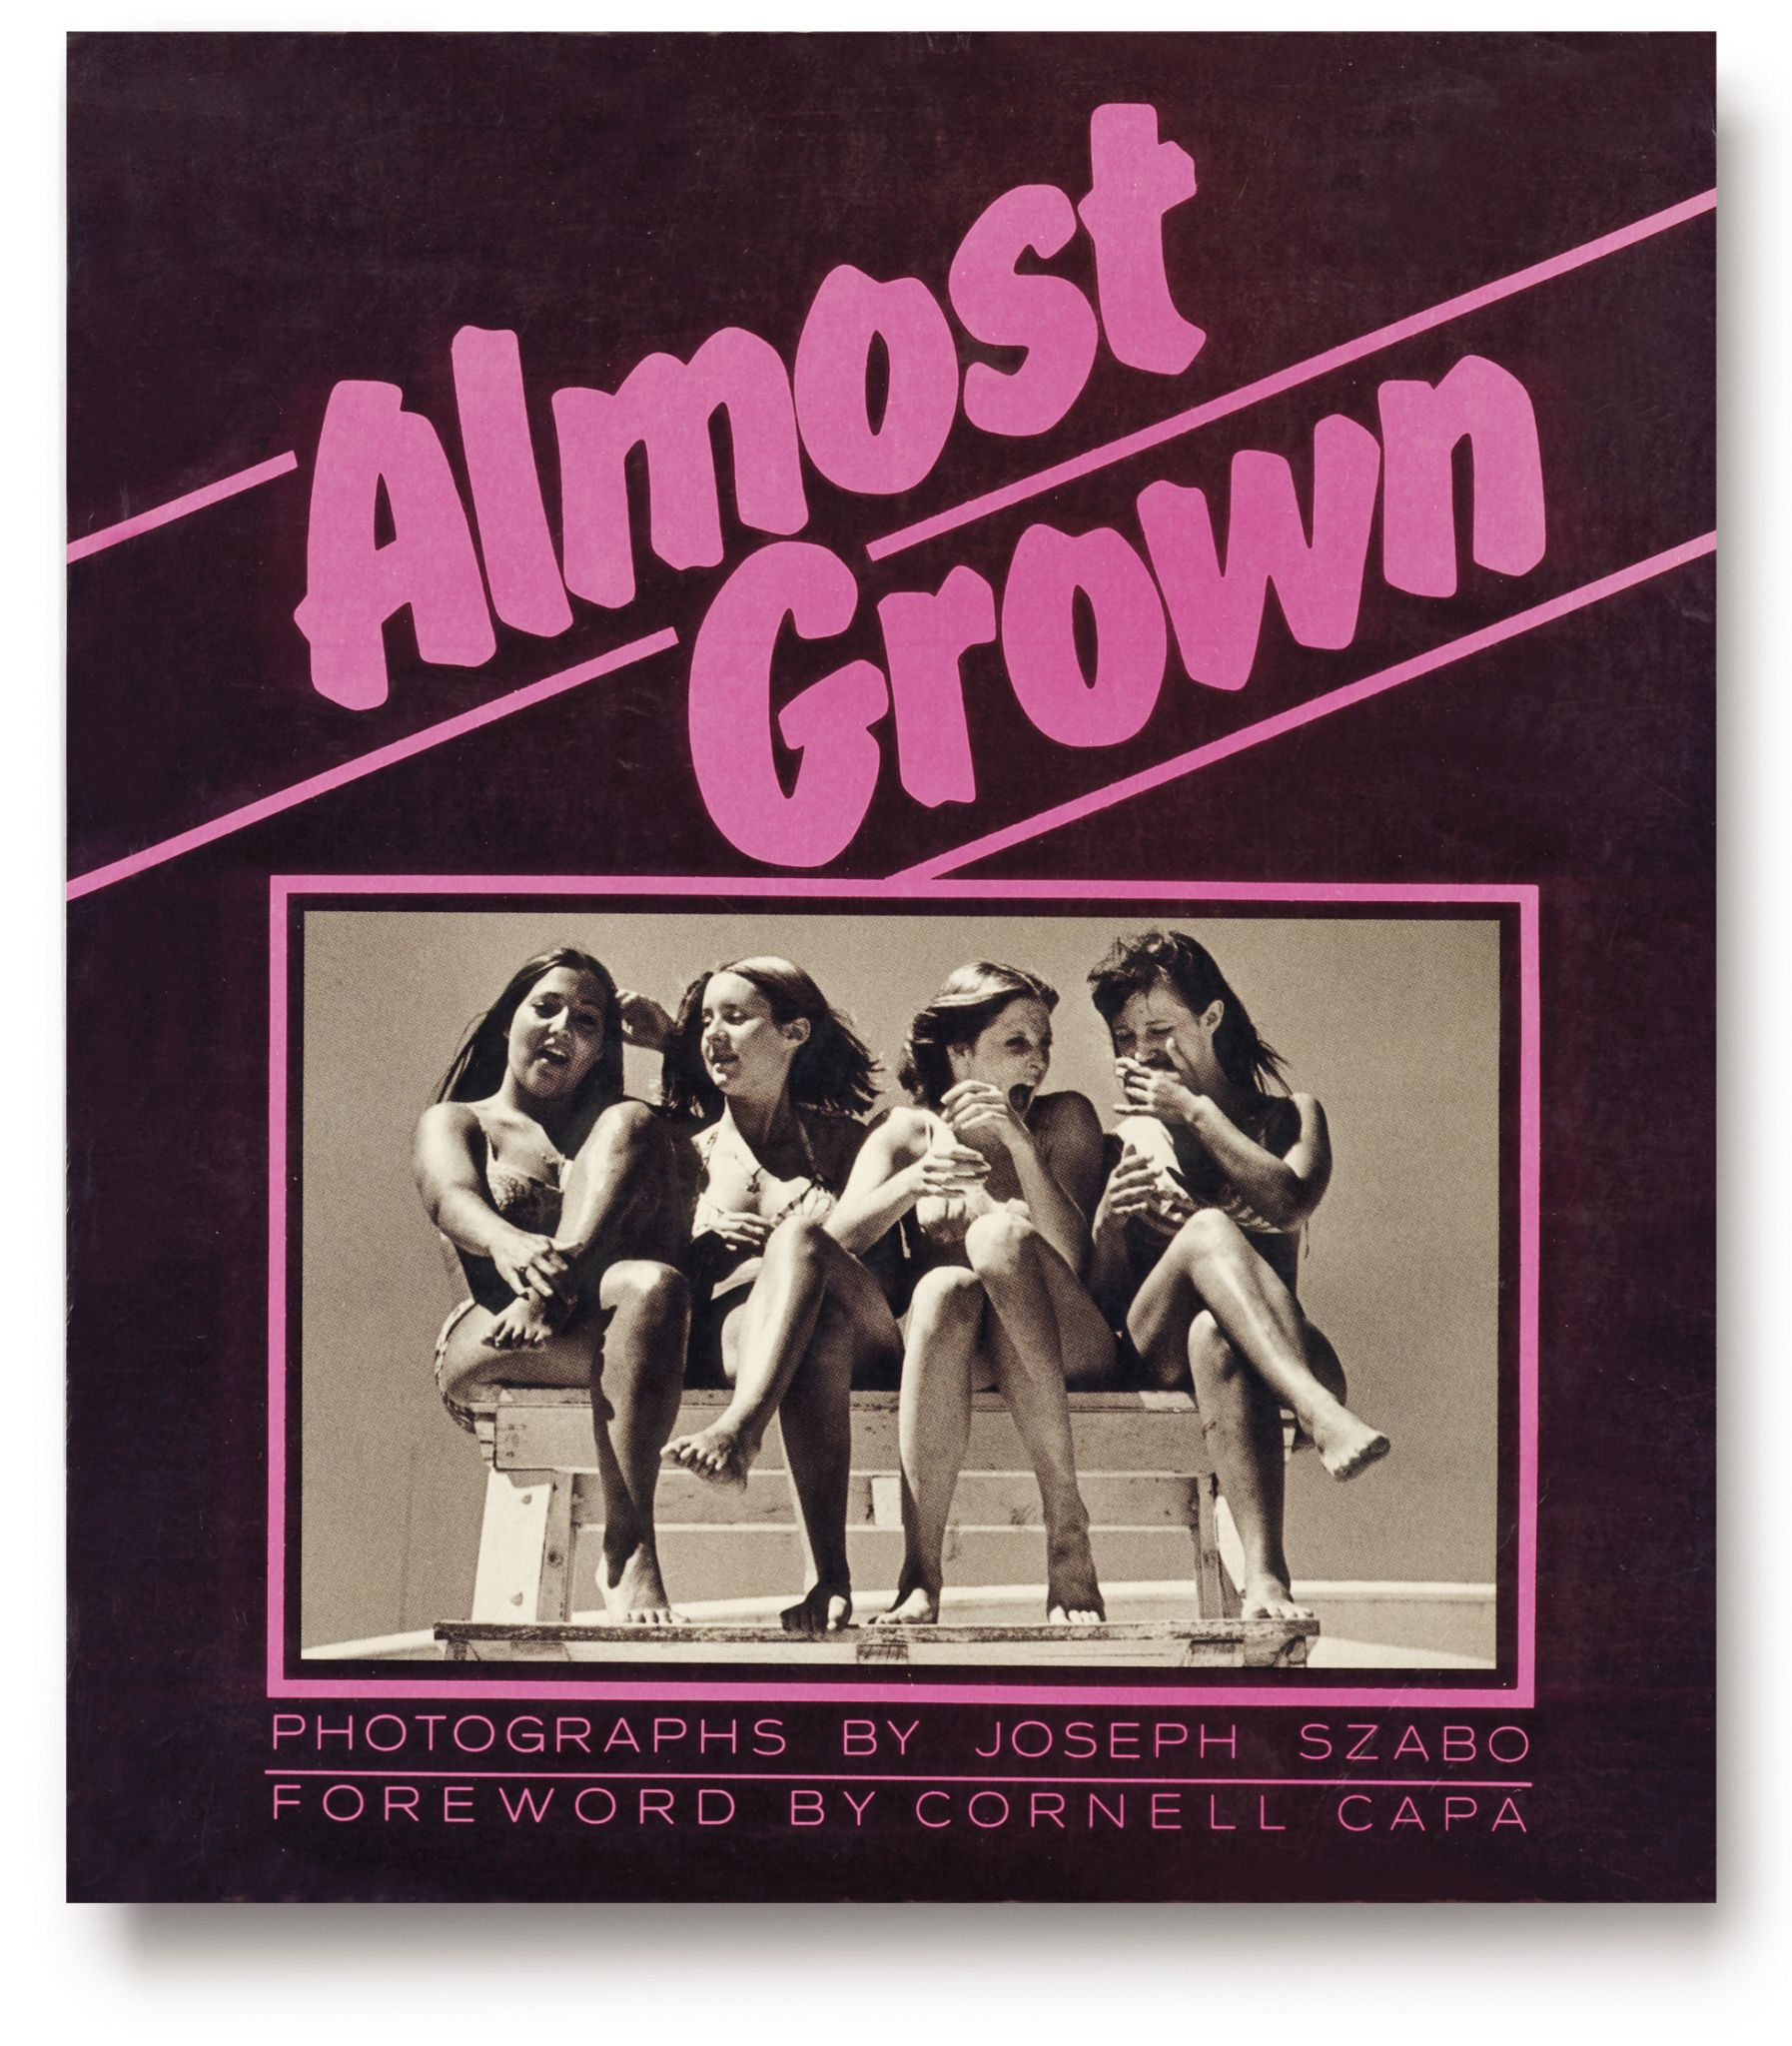 ALMOST GROWN, book cover sm copiar_1